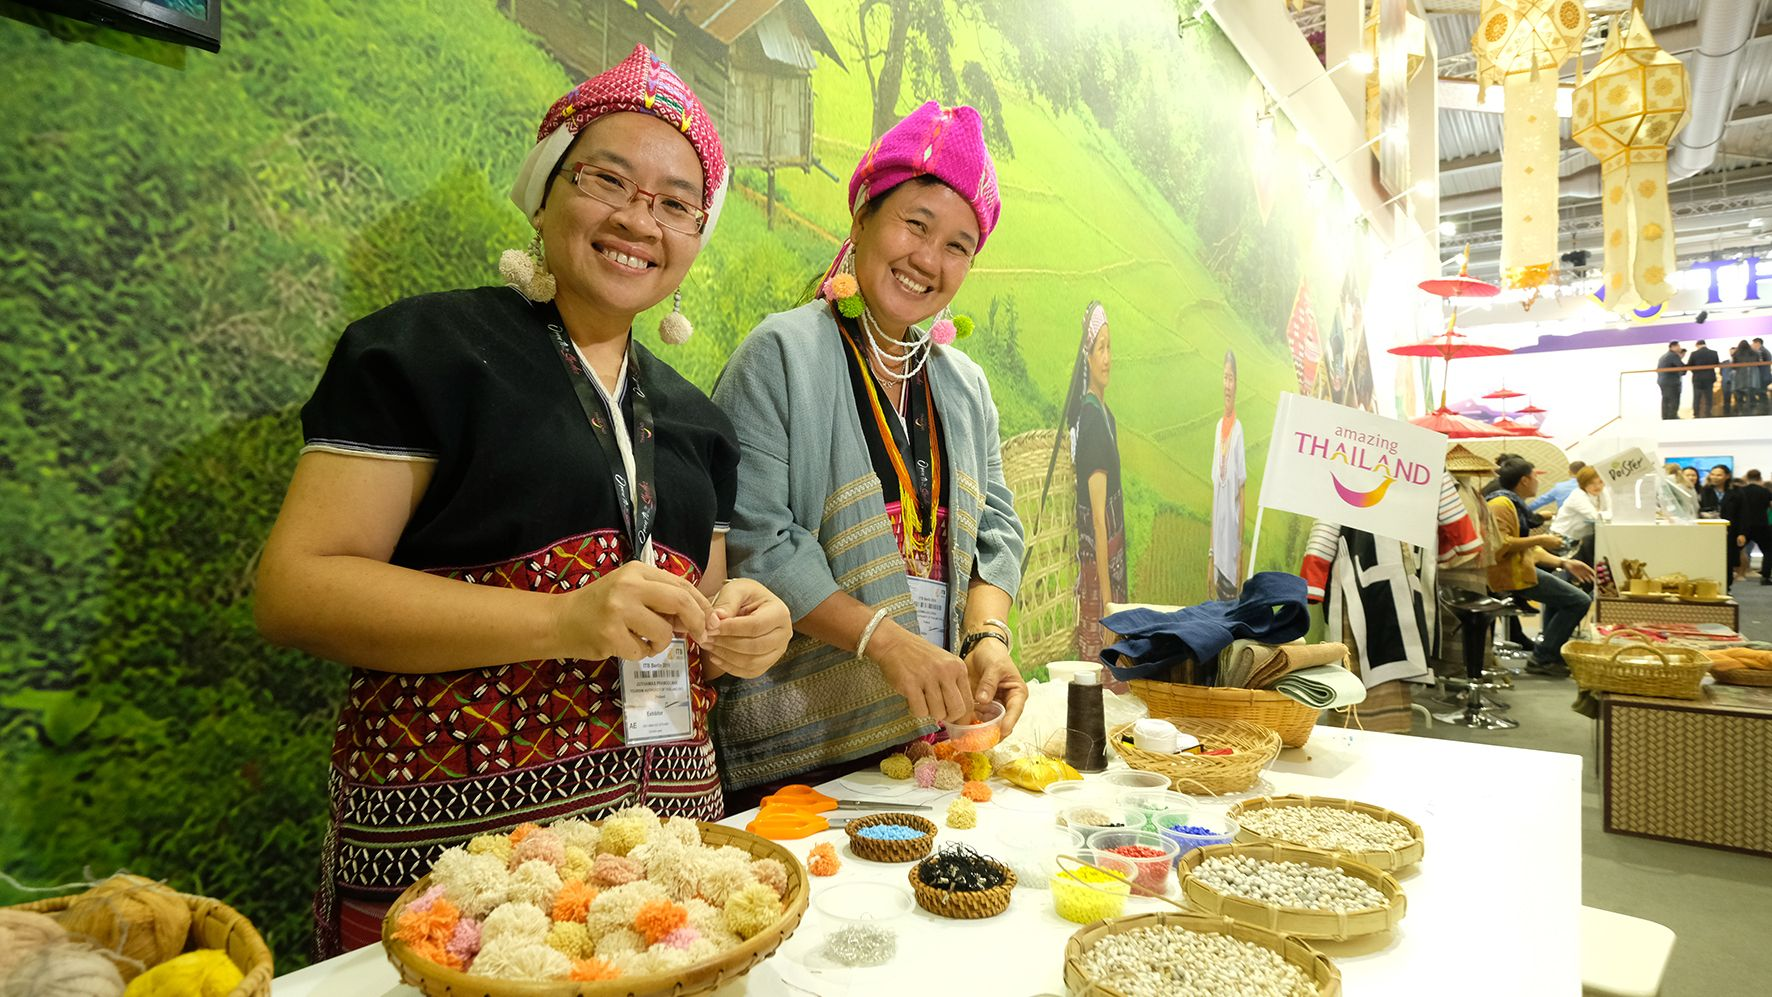 All smiles on the Thai stand at ITB.